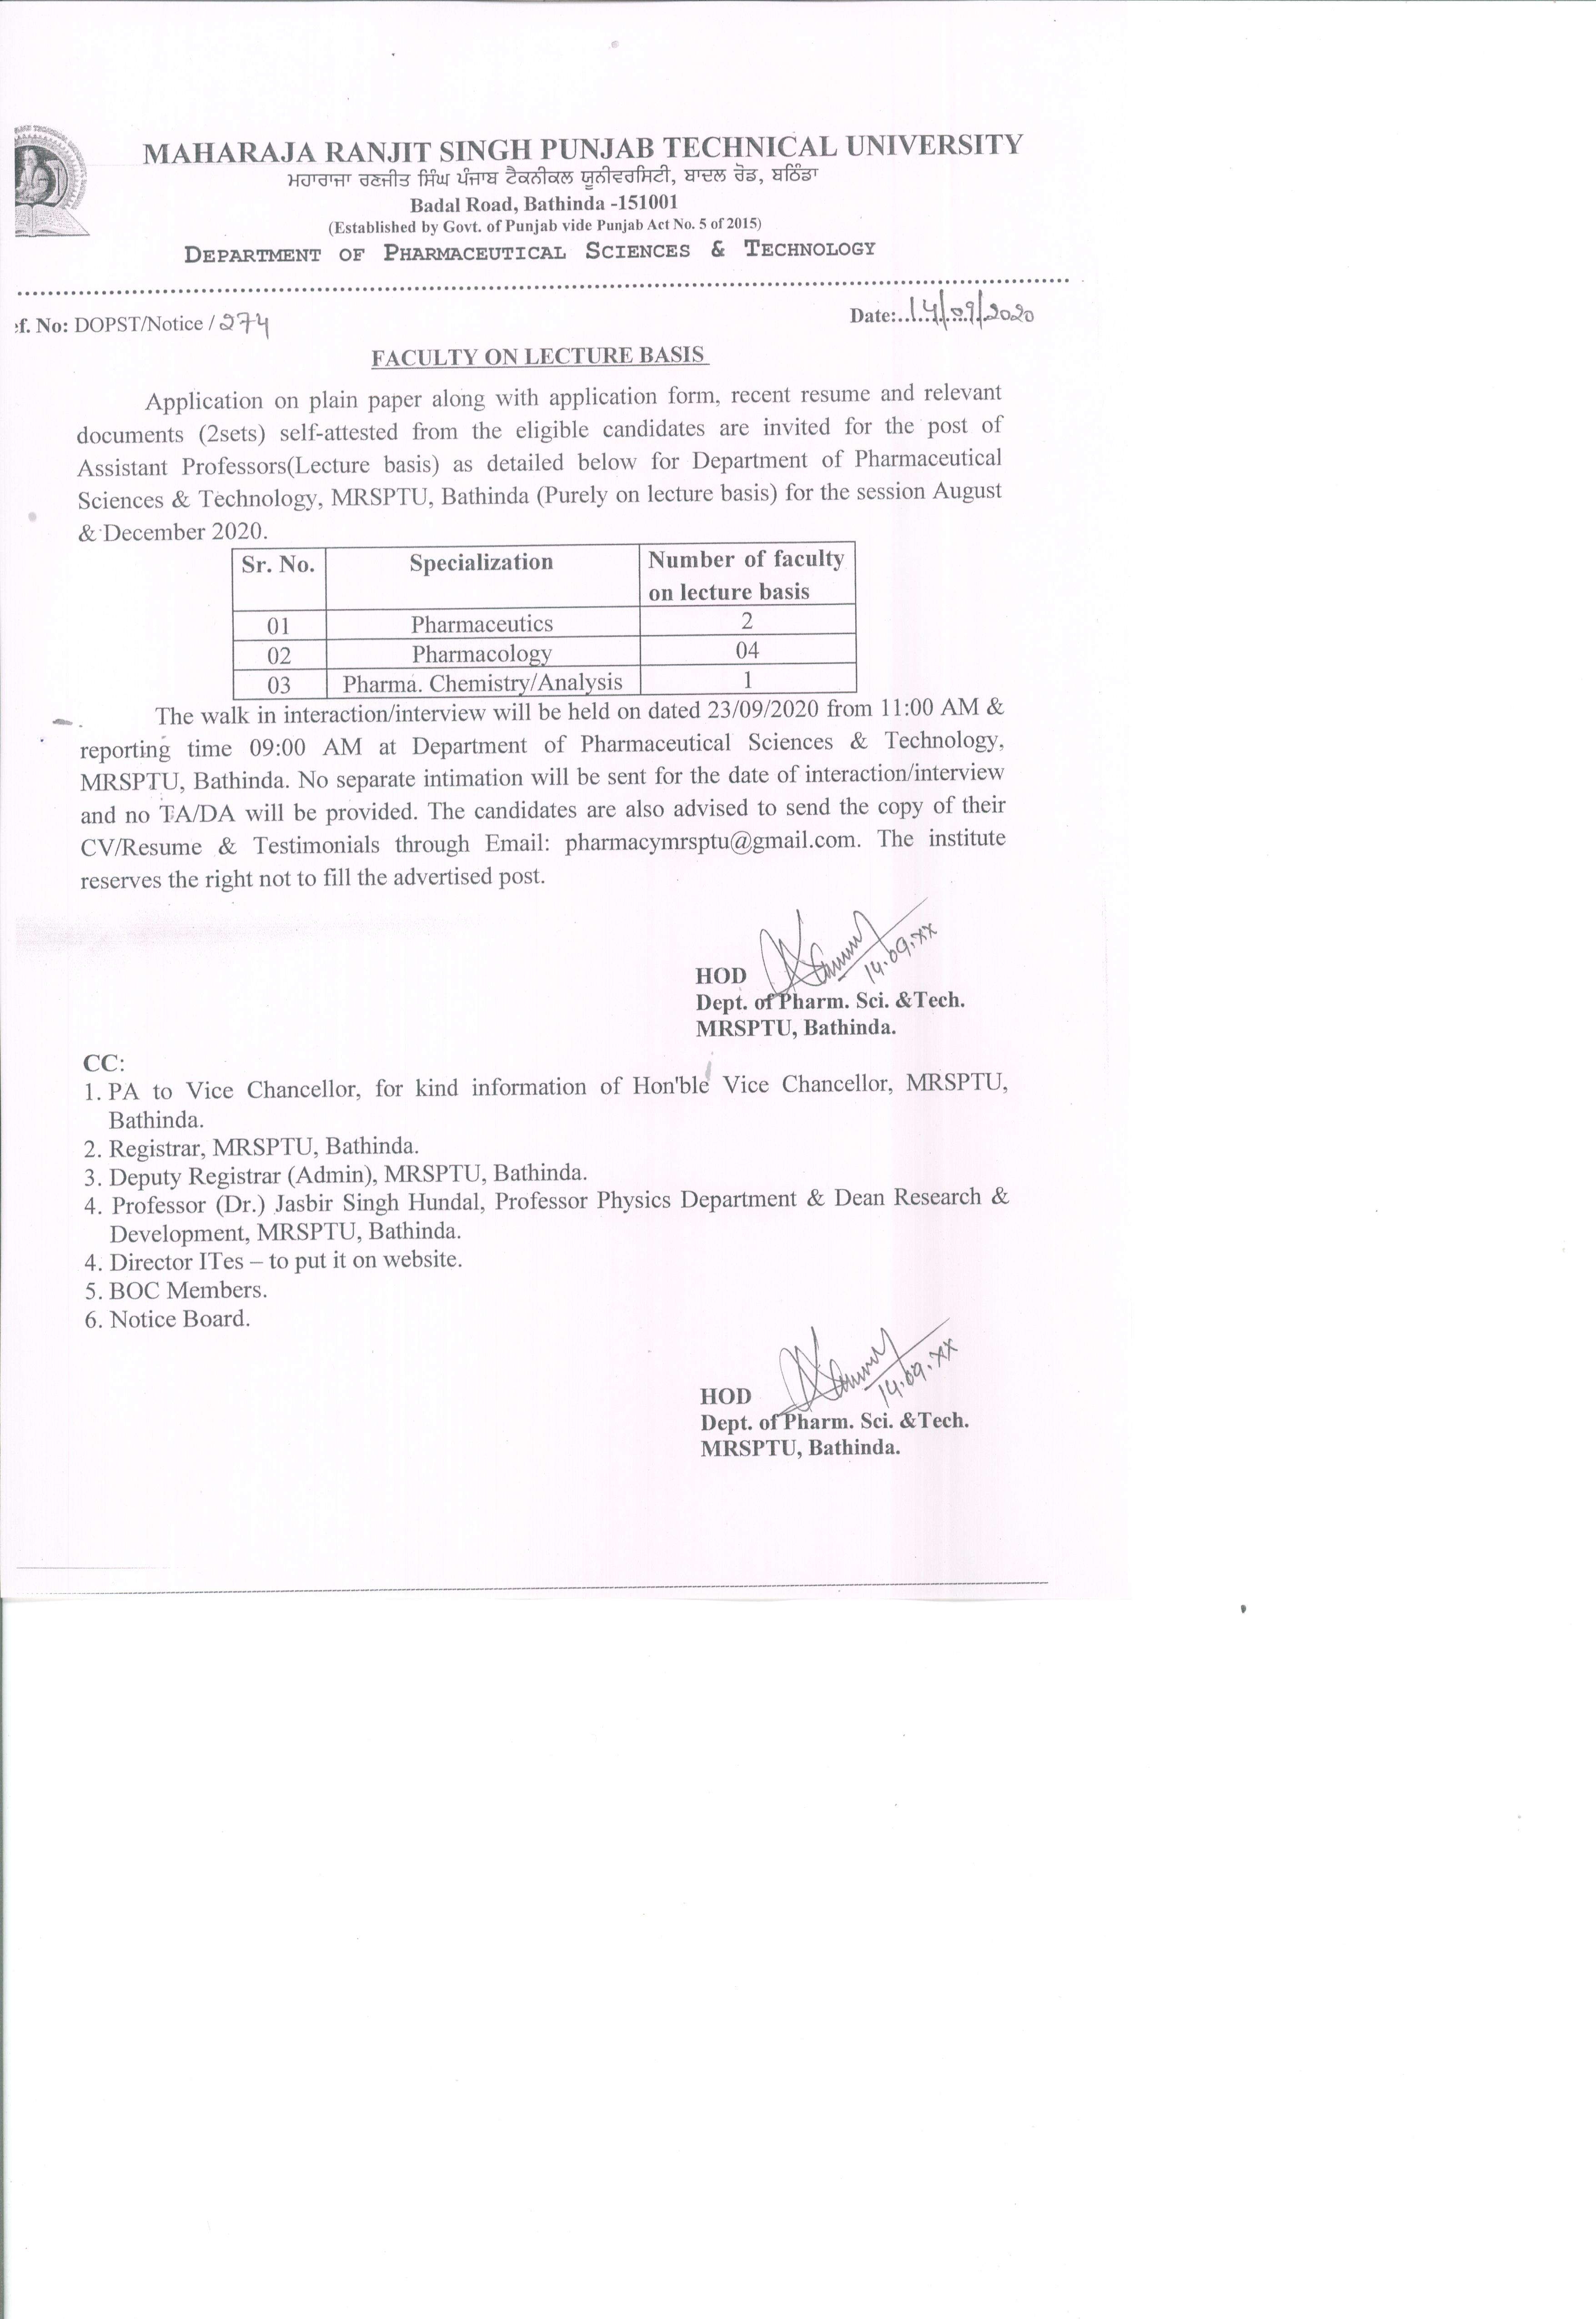 Invitation Letter For Guest Lecturer In Engineering College from mrsptu.ac.in